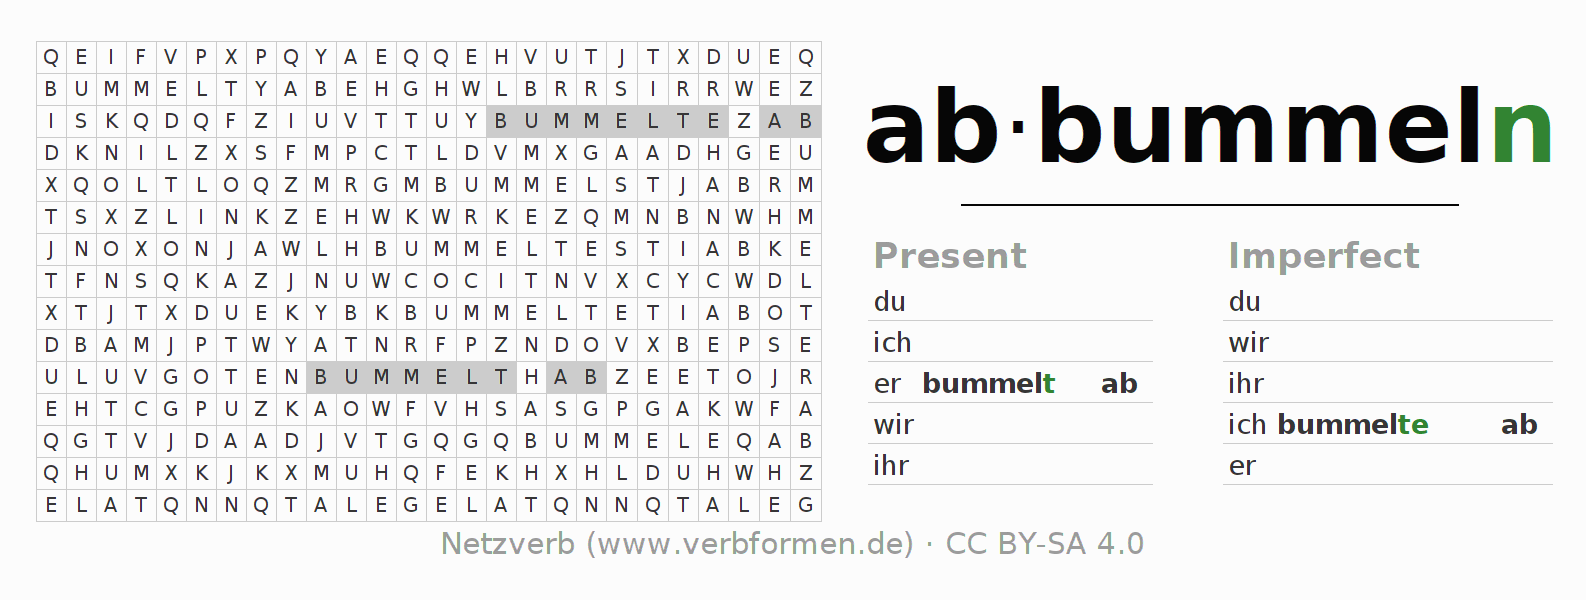 Word search puzzle for the conjugation of the verb abbummeln